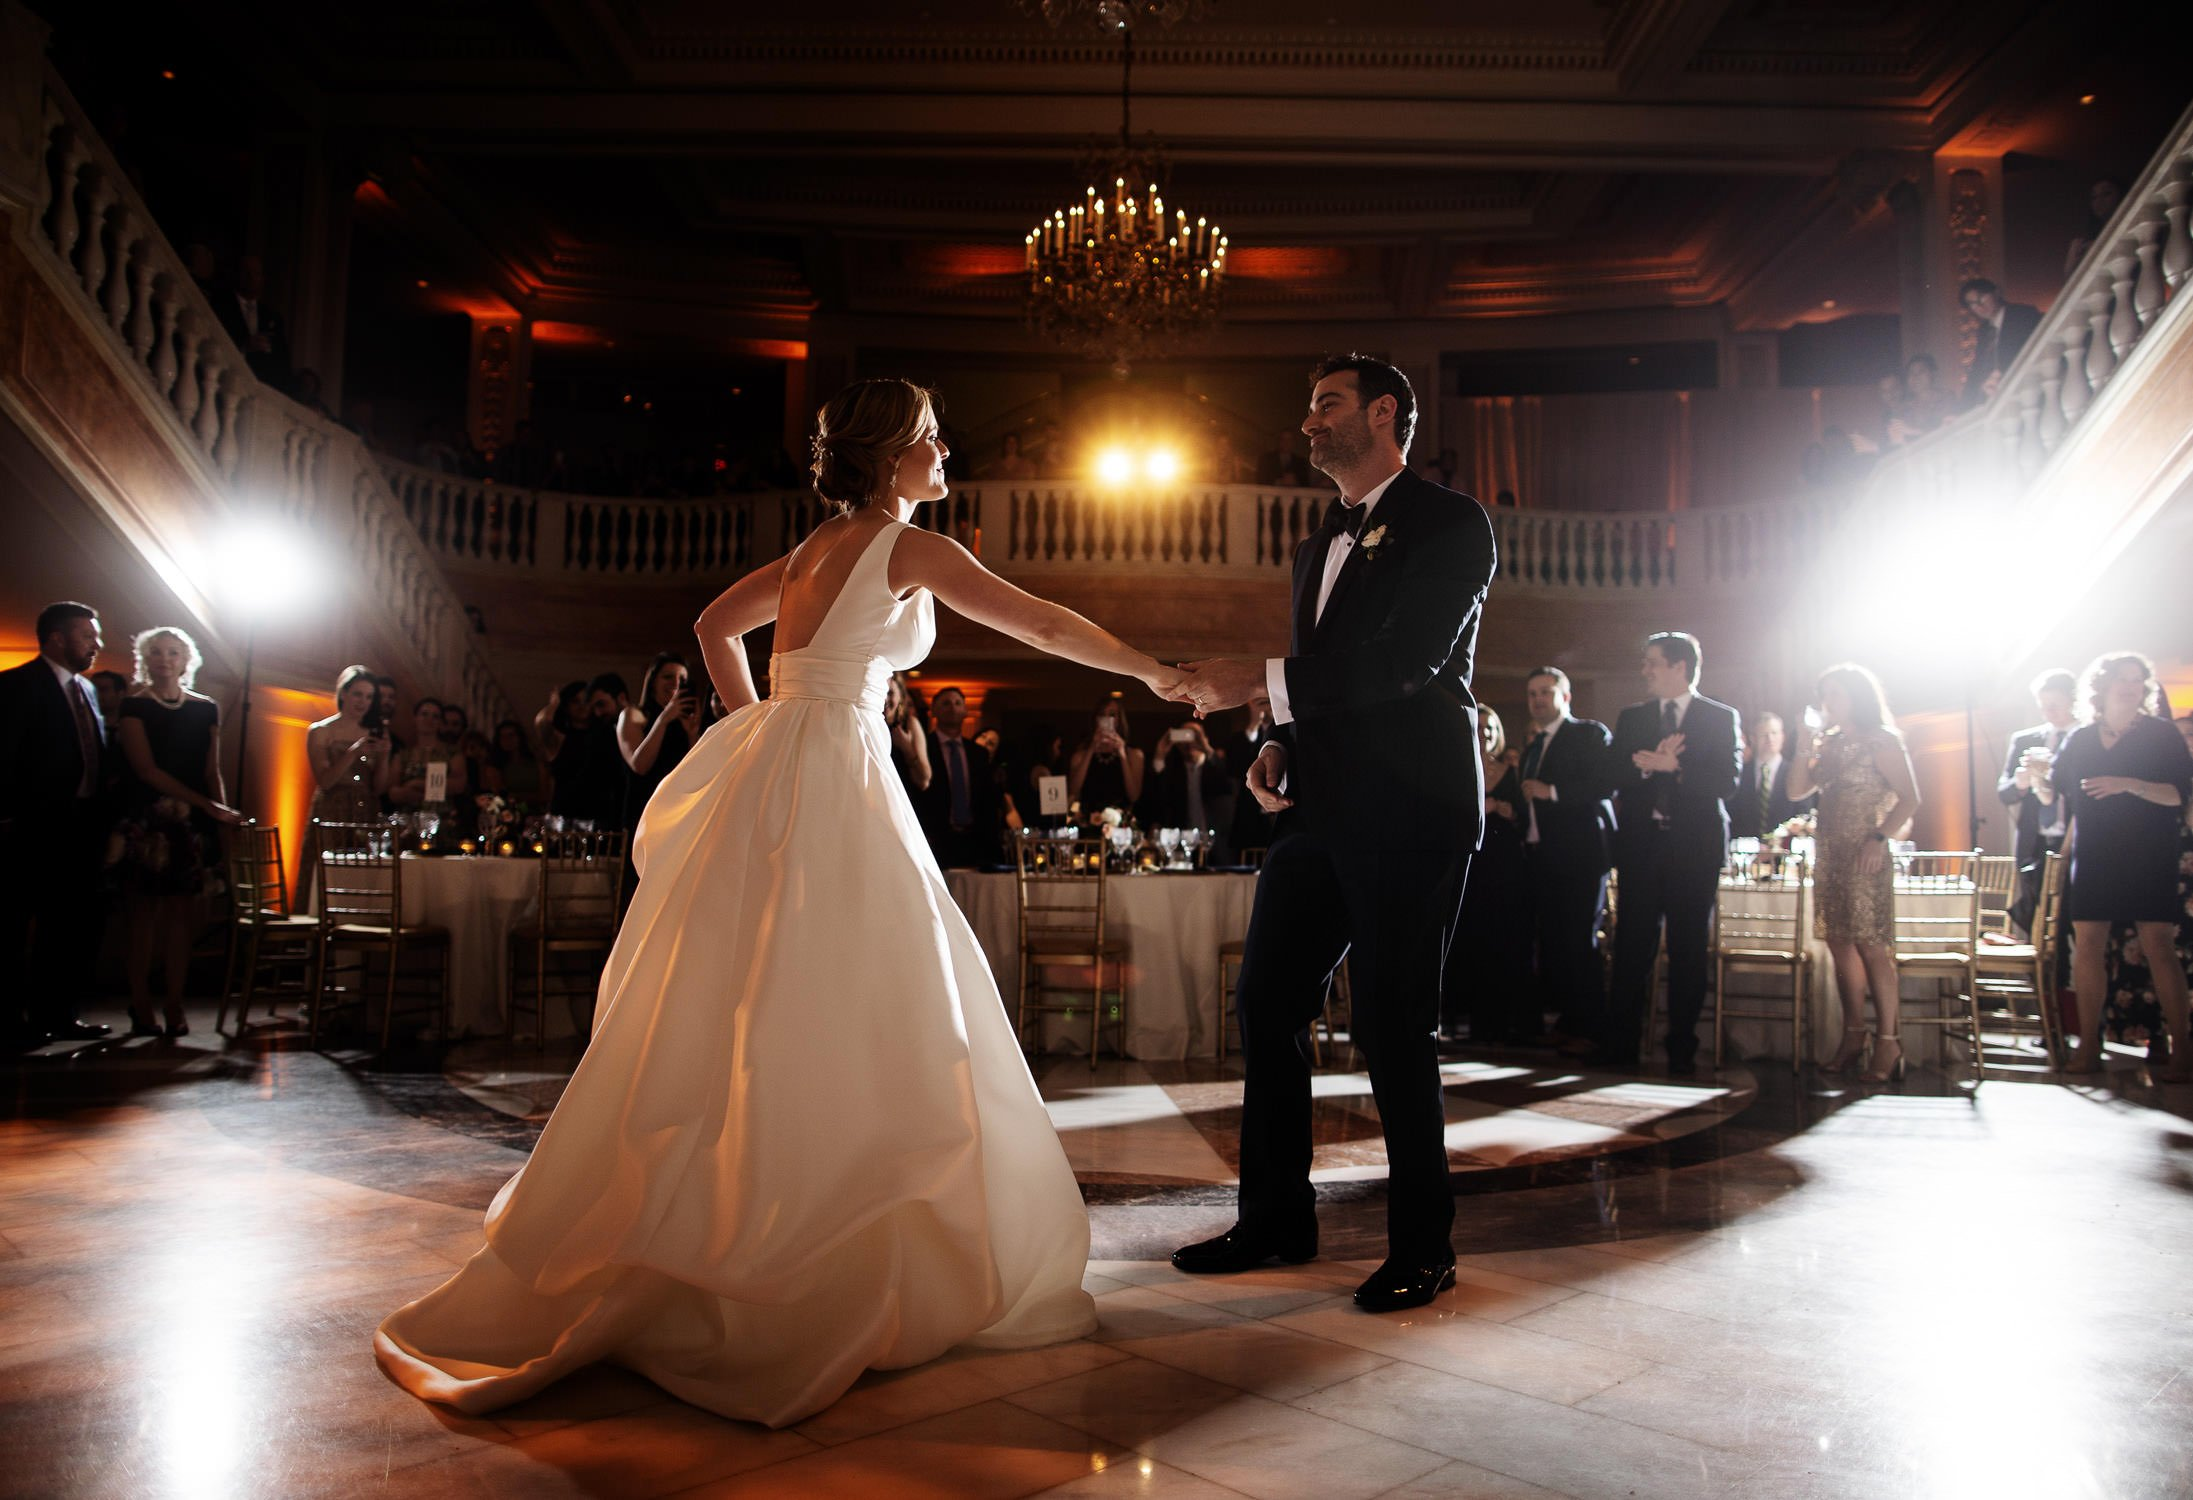 The bride and groom share their first dance at NMWA in Washington, DC.